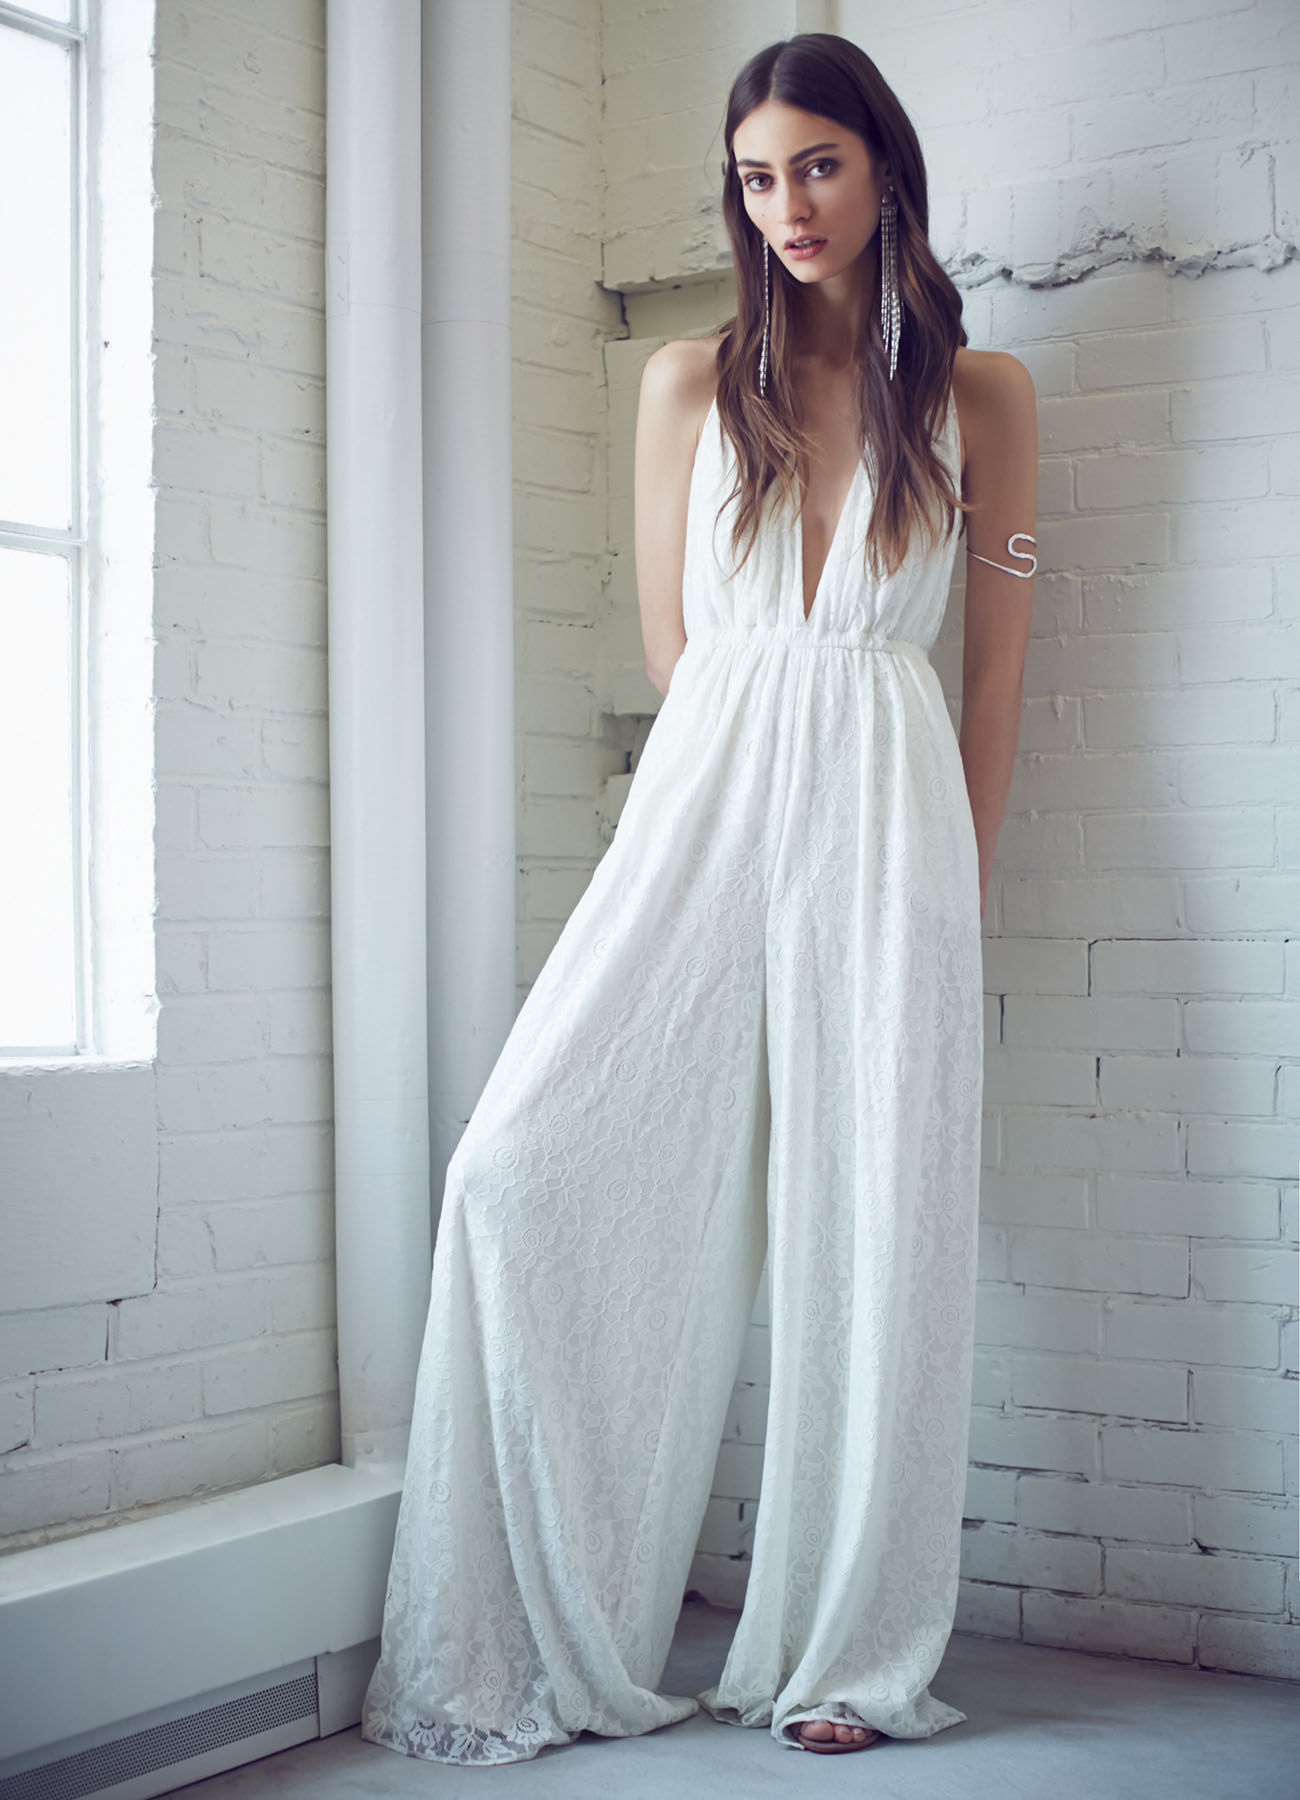 Free People Spring 2016 Wedding Dress Collection - Green Wedding Shoes